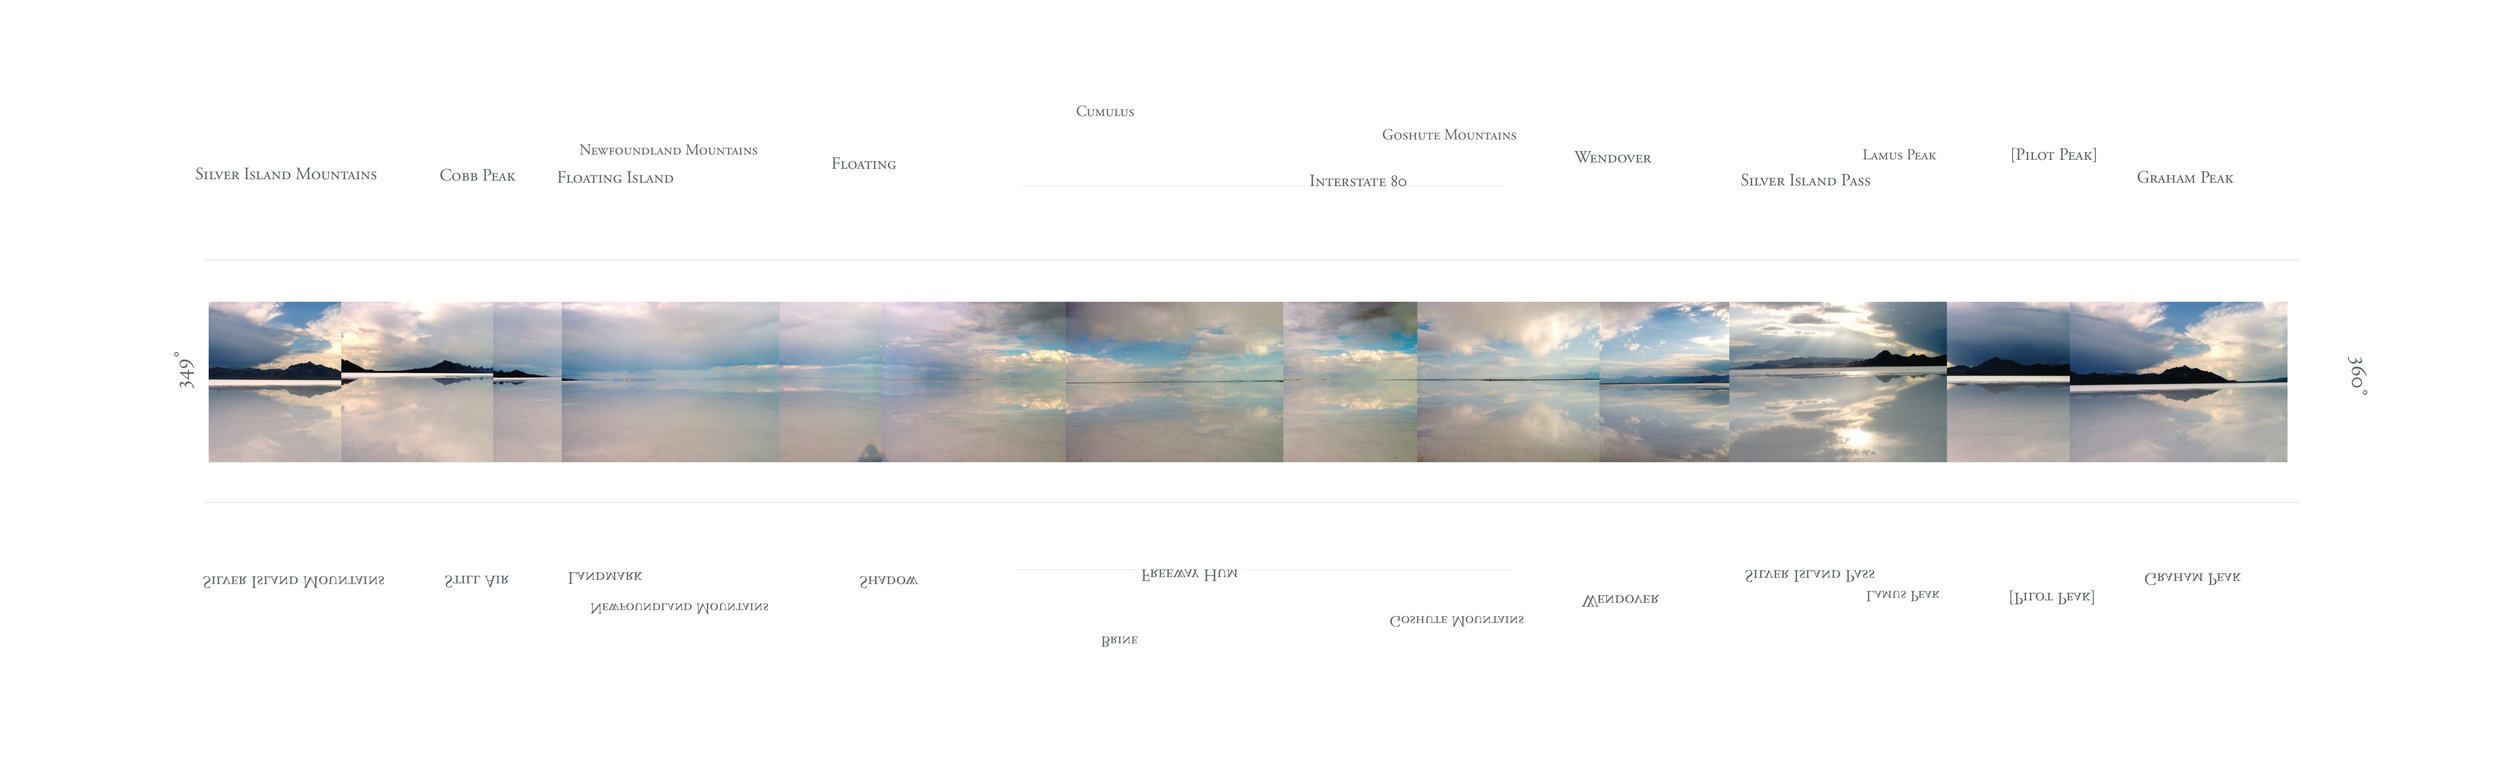 Mirror Panorama  — Floating Point Operation, 2005 — 2007